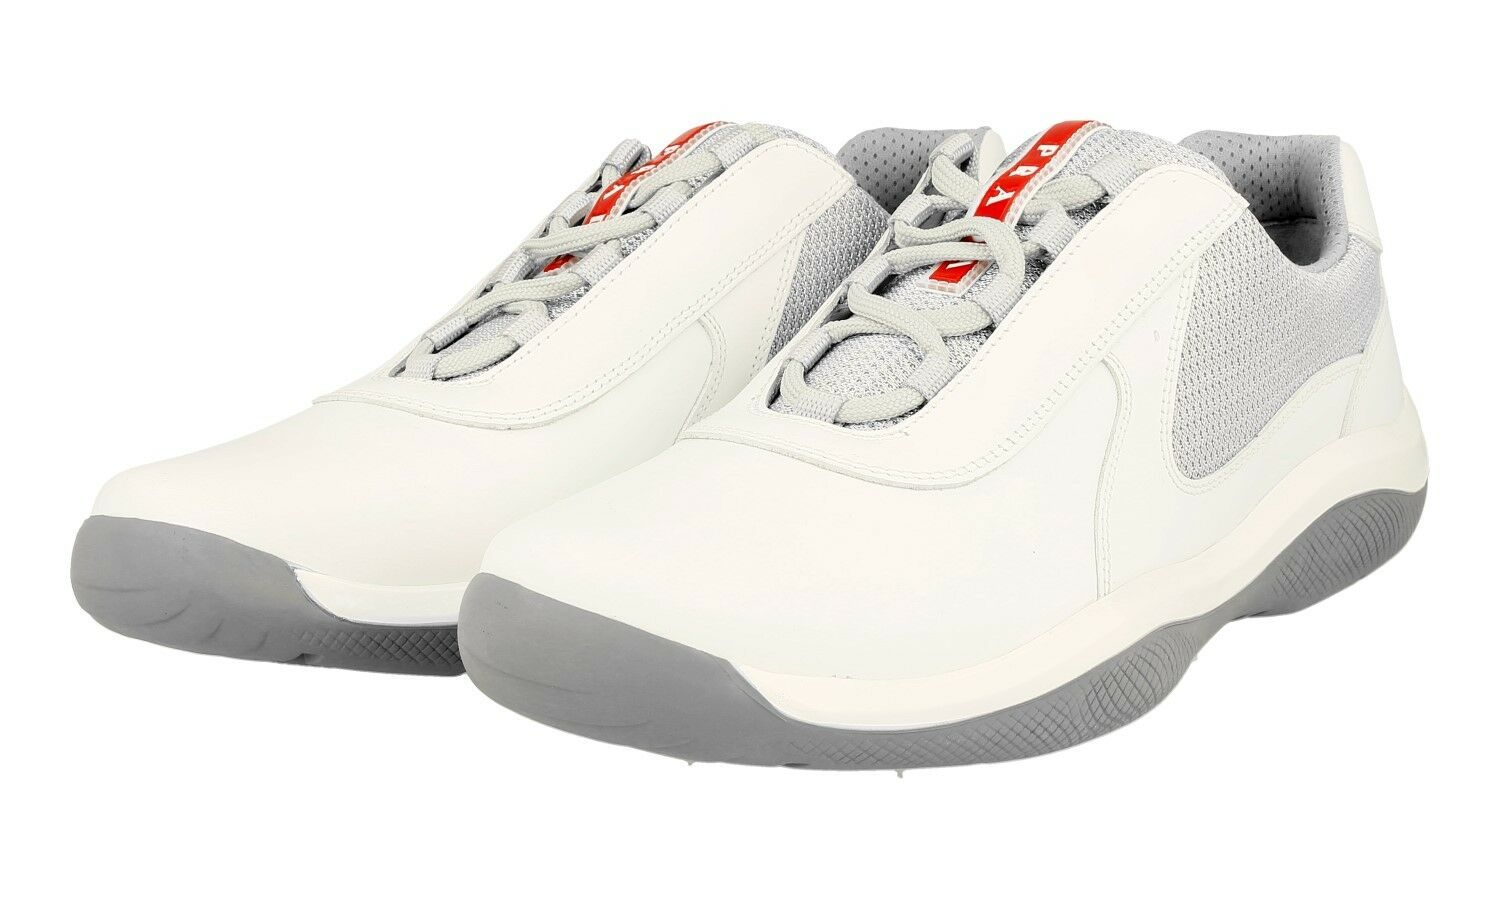 shoes PRADA AMERICAS CUP LUSSO 4E2905 BIANCO NUOVE 9 43 43,5